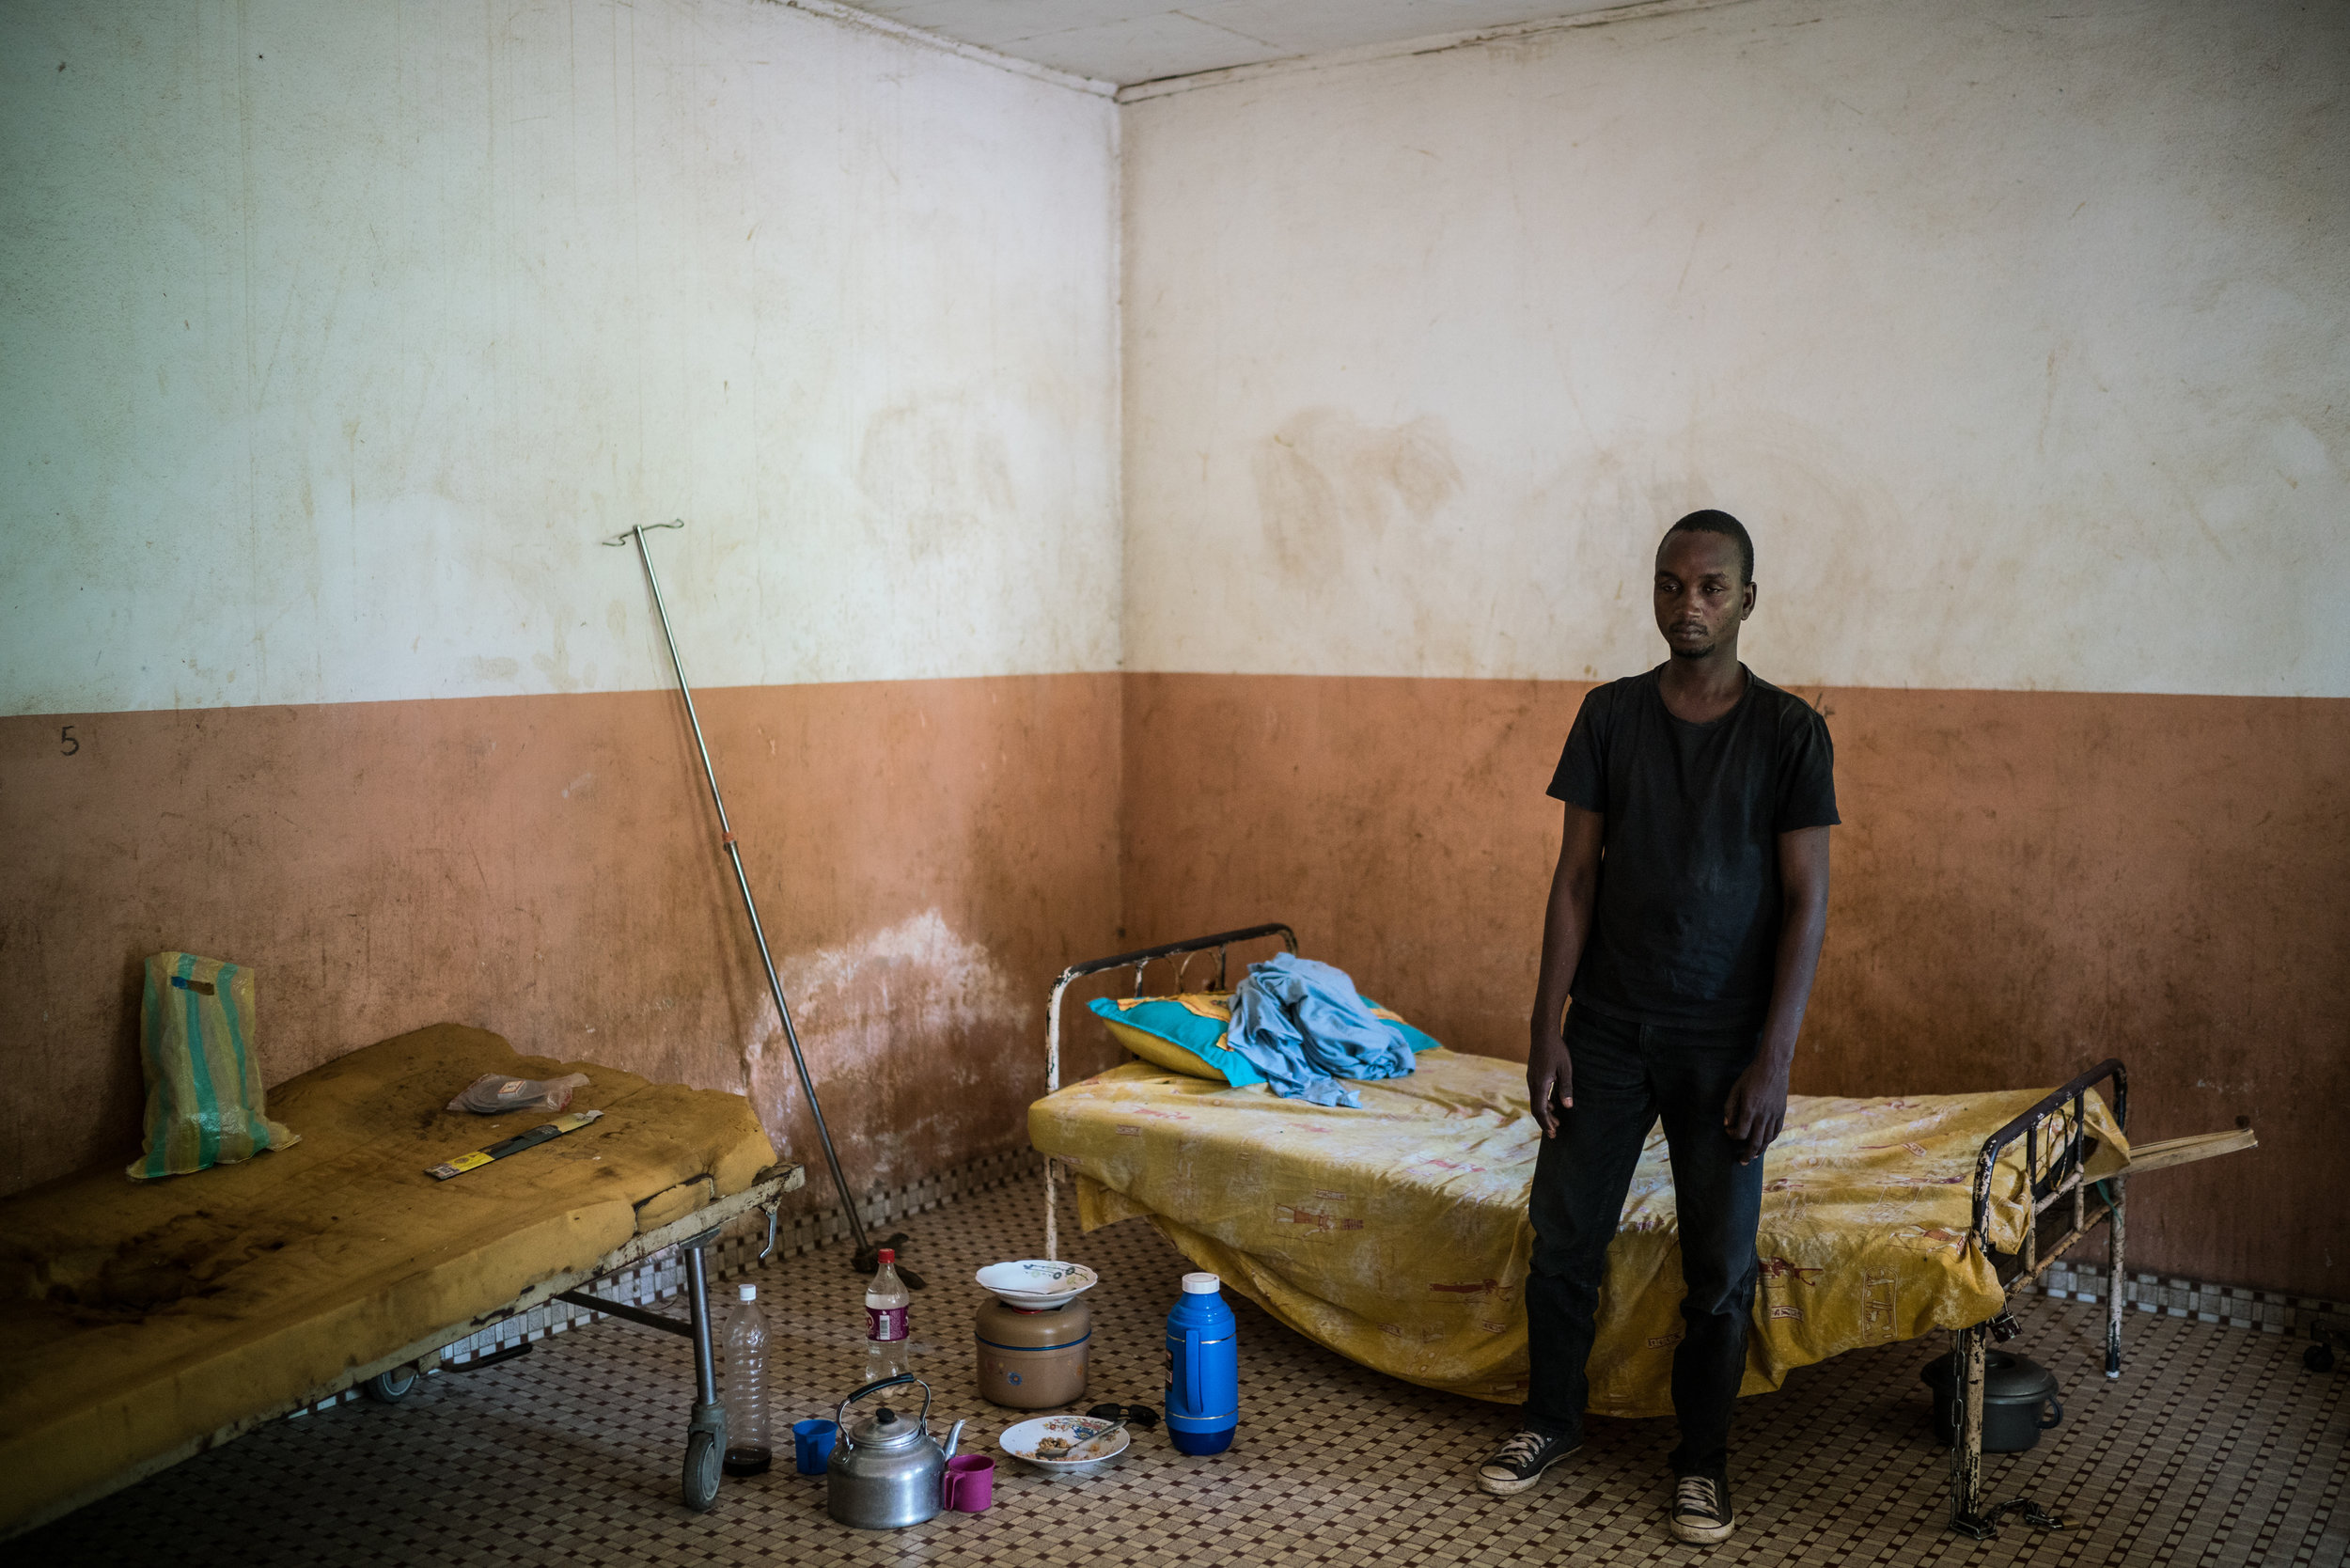 Maman Boubacare, 31, shuffles from his bed in the psychiatric ward of the regional hospital in Garoua, Cameroon. Maman's brother brought him to the hospital after Maman's mental and physical health detoriorated from what his brother and doctors have said was an increasingly large array of drugs taken including tramadol.